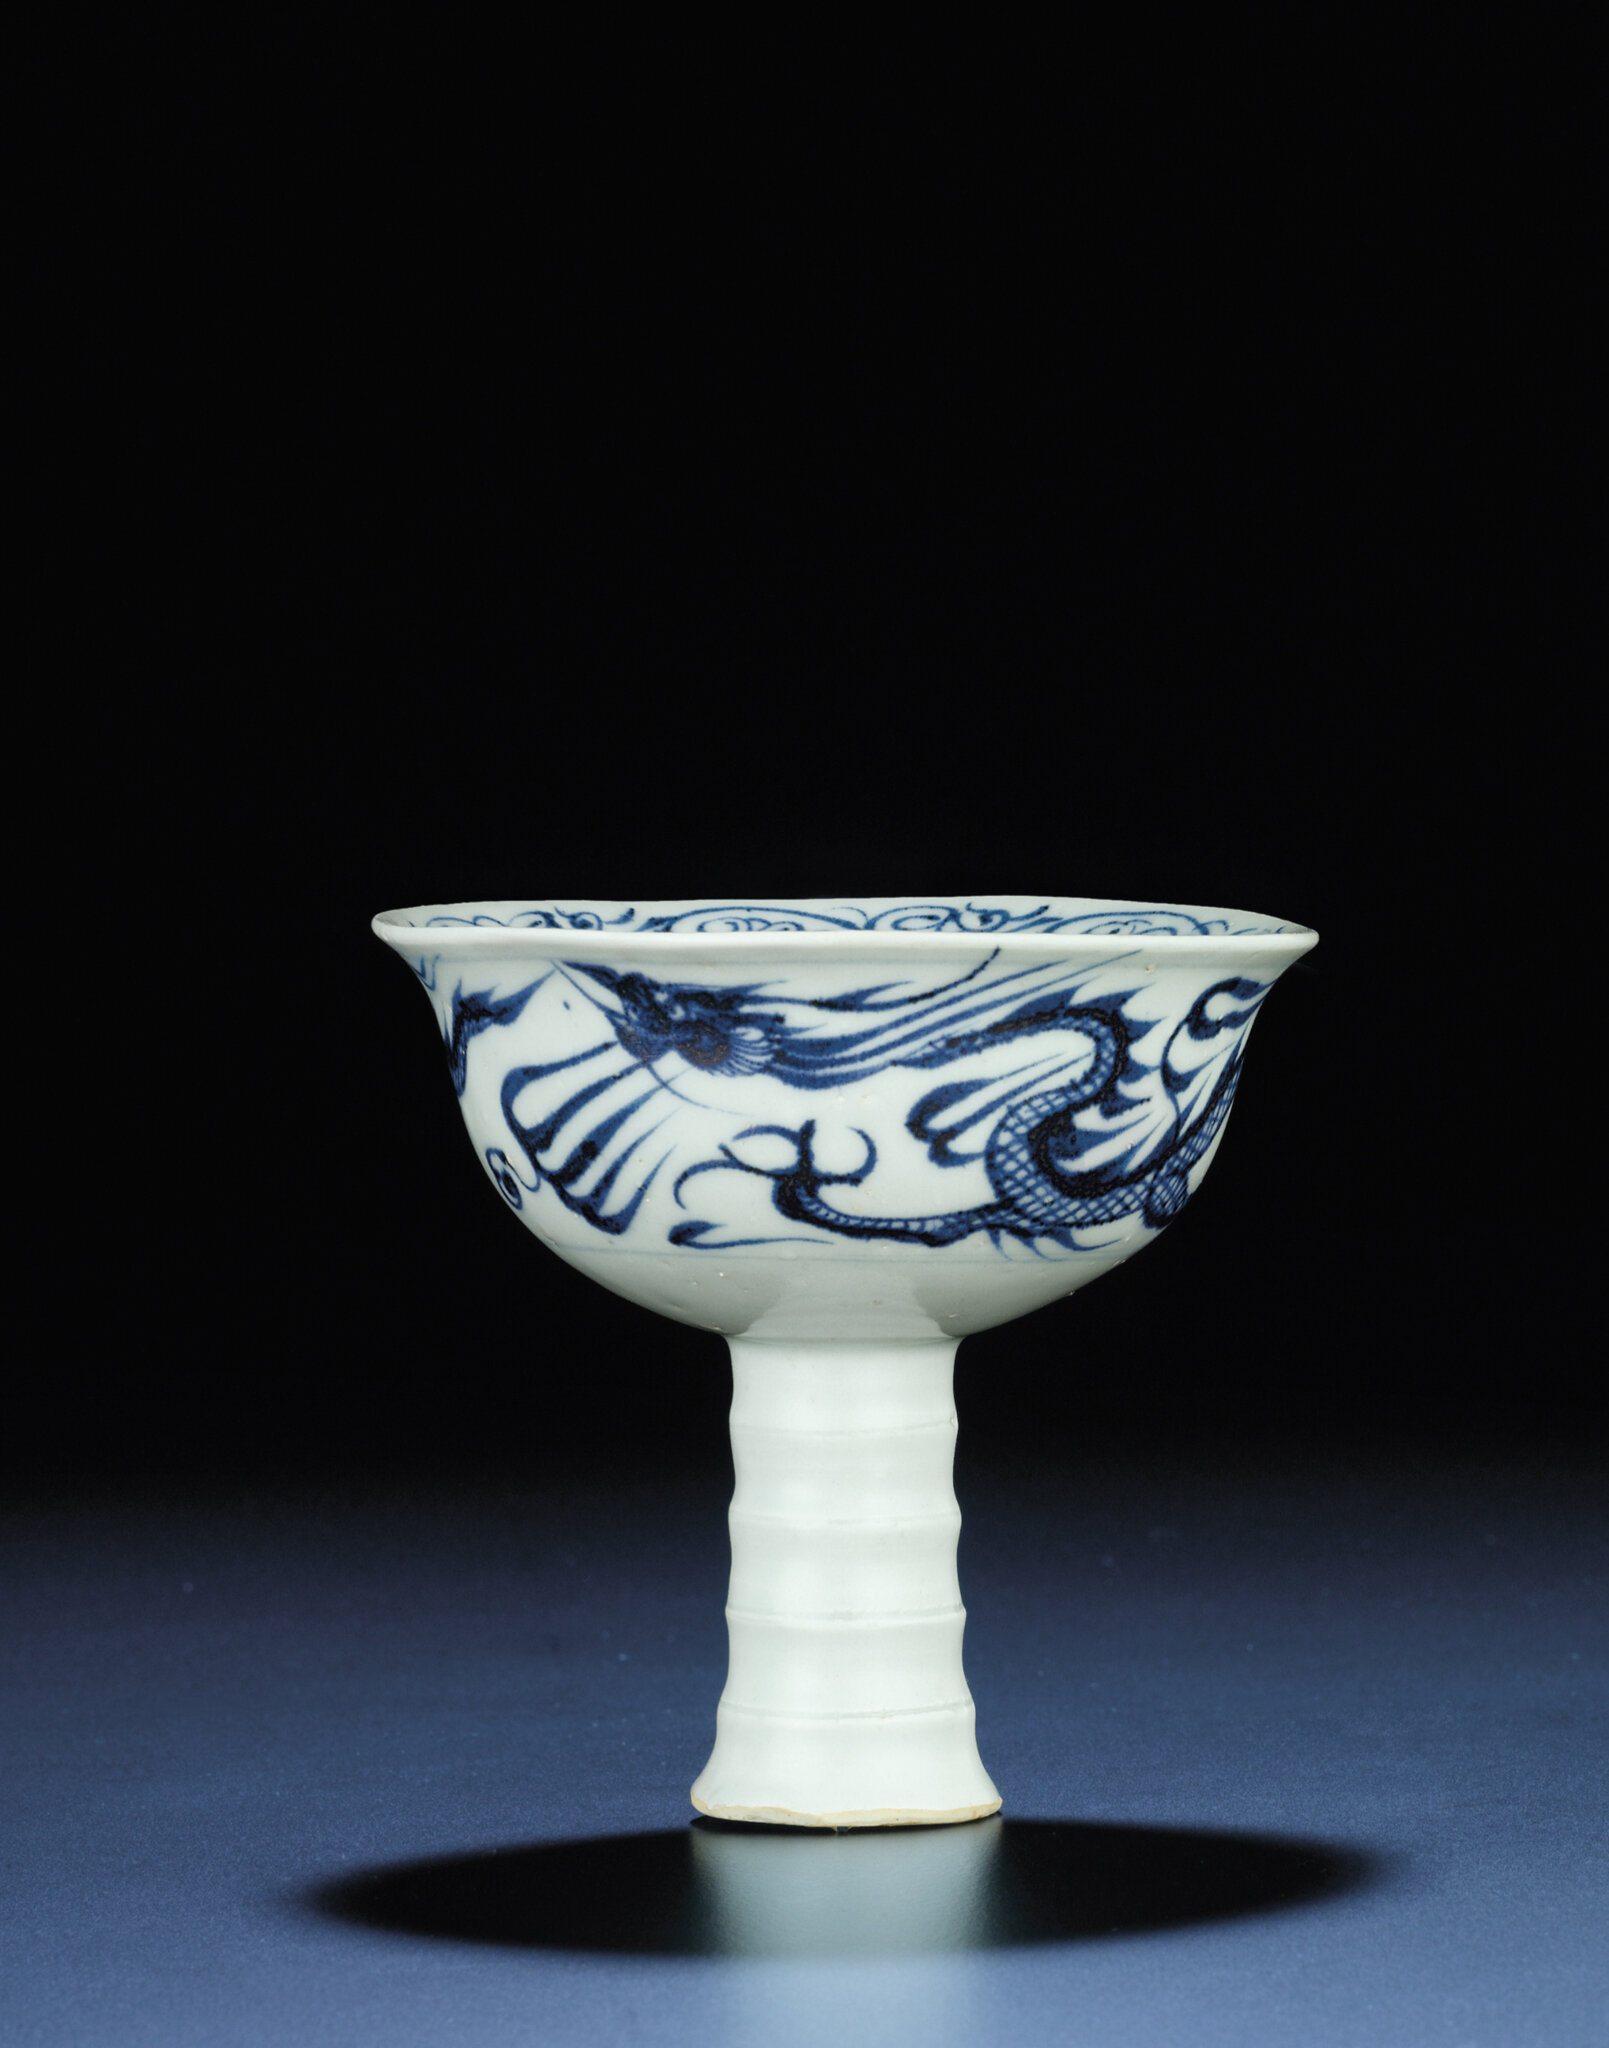 A very rare underglaze-blue moulded 'dragon' stemcup, gaozu wan, Yuan-Early Ming dynasty, late 14th century